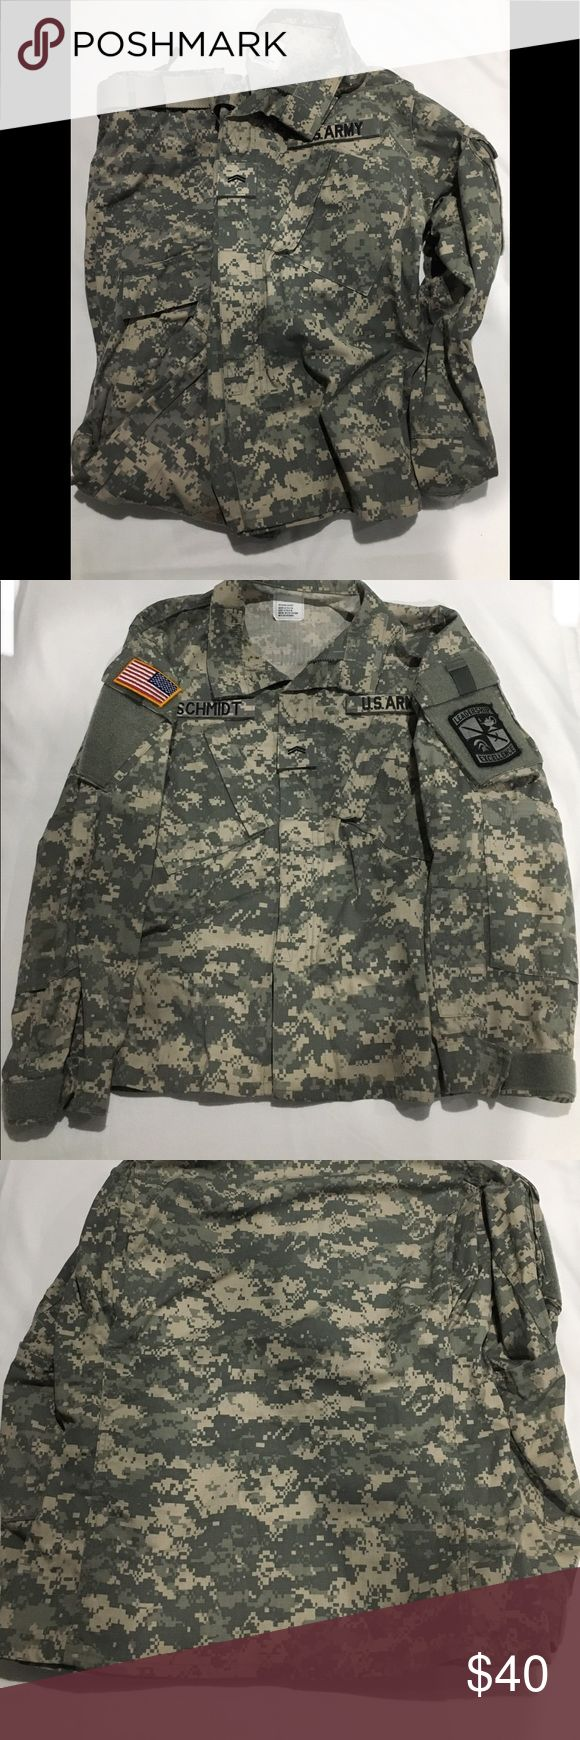 """Set of US Army ACU Army Combat Uniform Top Item Description:  Set of US Army ACU Army Combat Uniform Top and Bottom MultiCam / Digital Camouflage. The ACU Top is a size Medium - Short. The ACU Bottom is a size Small - Regular.  Imperfections: The ACU Uniform has stains, discoloration, and fading.  Top Dimensions:  63"""" - 67"""" - Height 37"""" - 41"""" - Width  Bottom Dimensions:  29 ½"""" - 32 ½"""" - Inseam 27"""" - 31"""" Waist  Weight: 3 lbs. 0 oz.  Notes:  Please refer to pictures for items condition and…"""